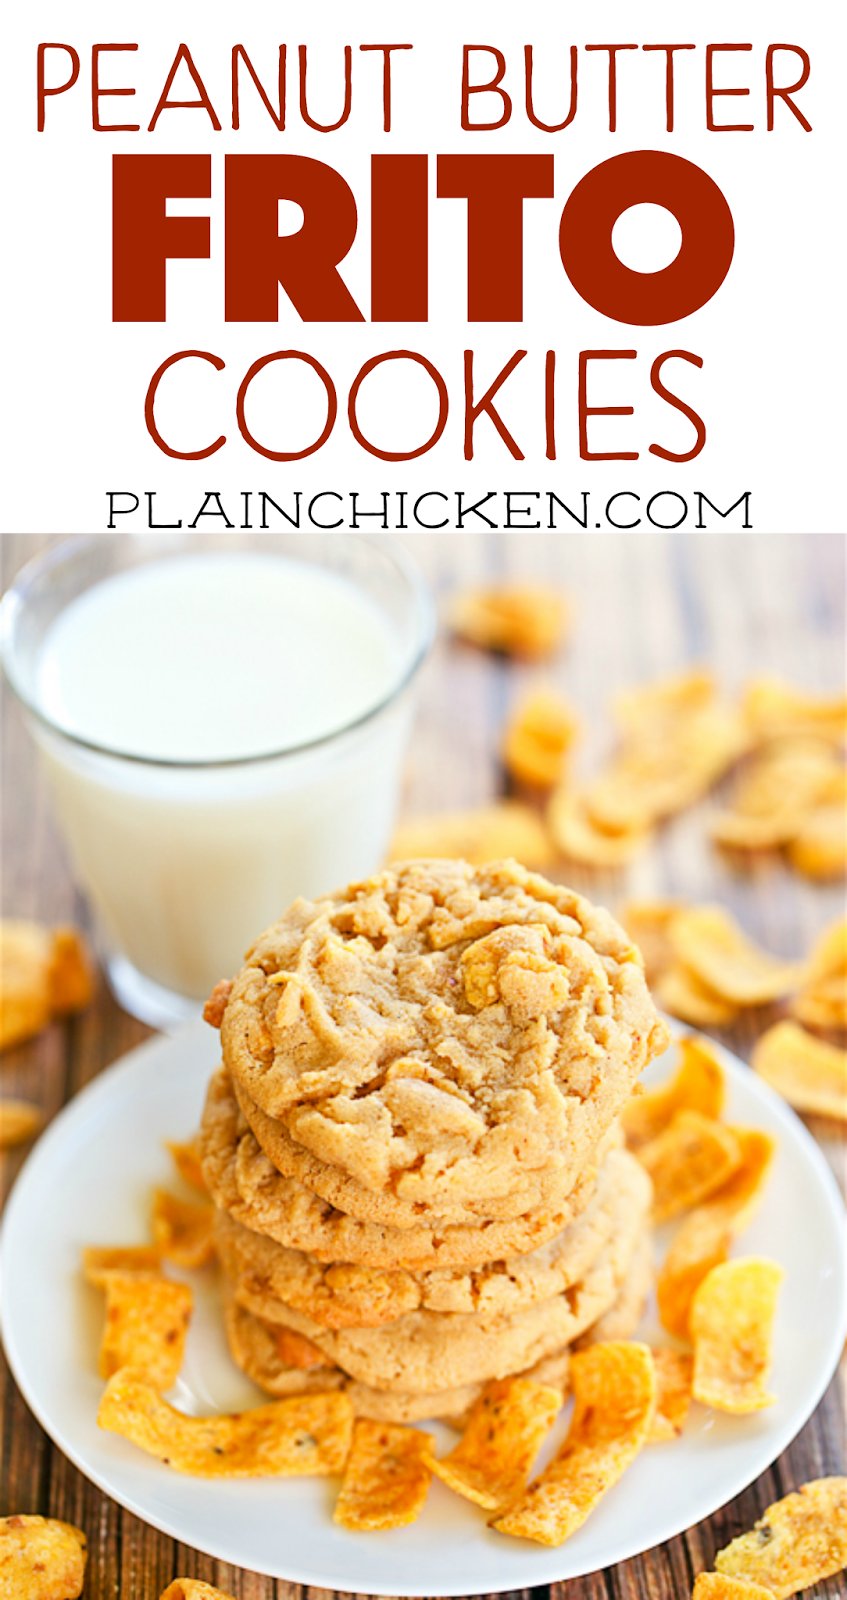 Peanut Butter Frito Cookies - sweet and salty goodness! These cookies are CRAZY good! Sweet and Salty in every bite. We could not stop eating these cookies. YUM! Great for parties and tailgating.